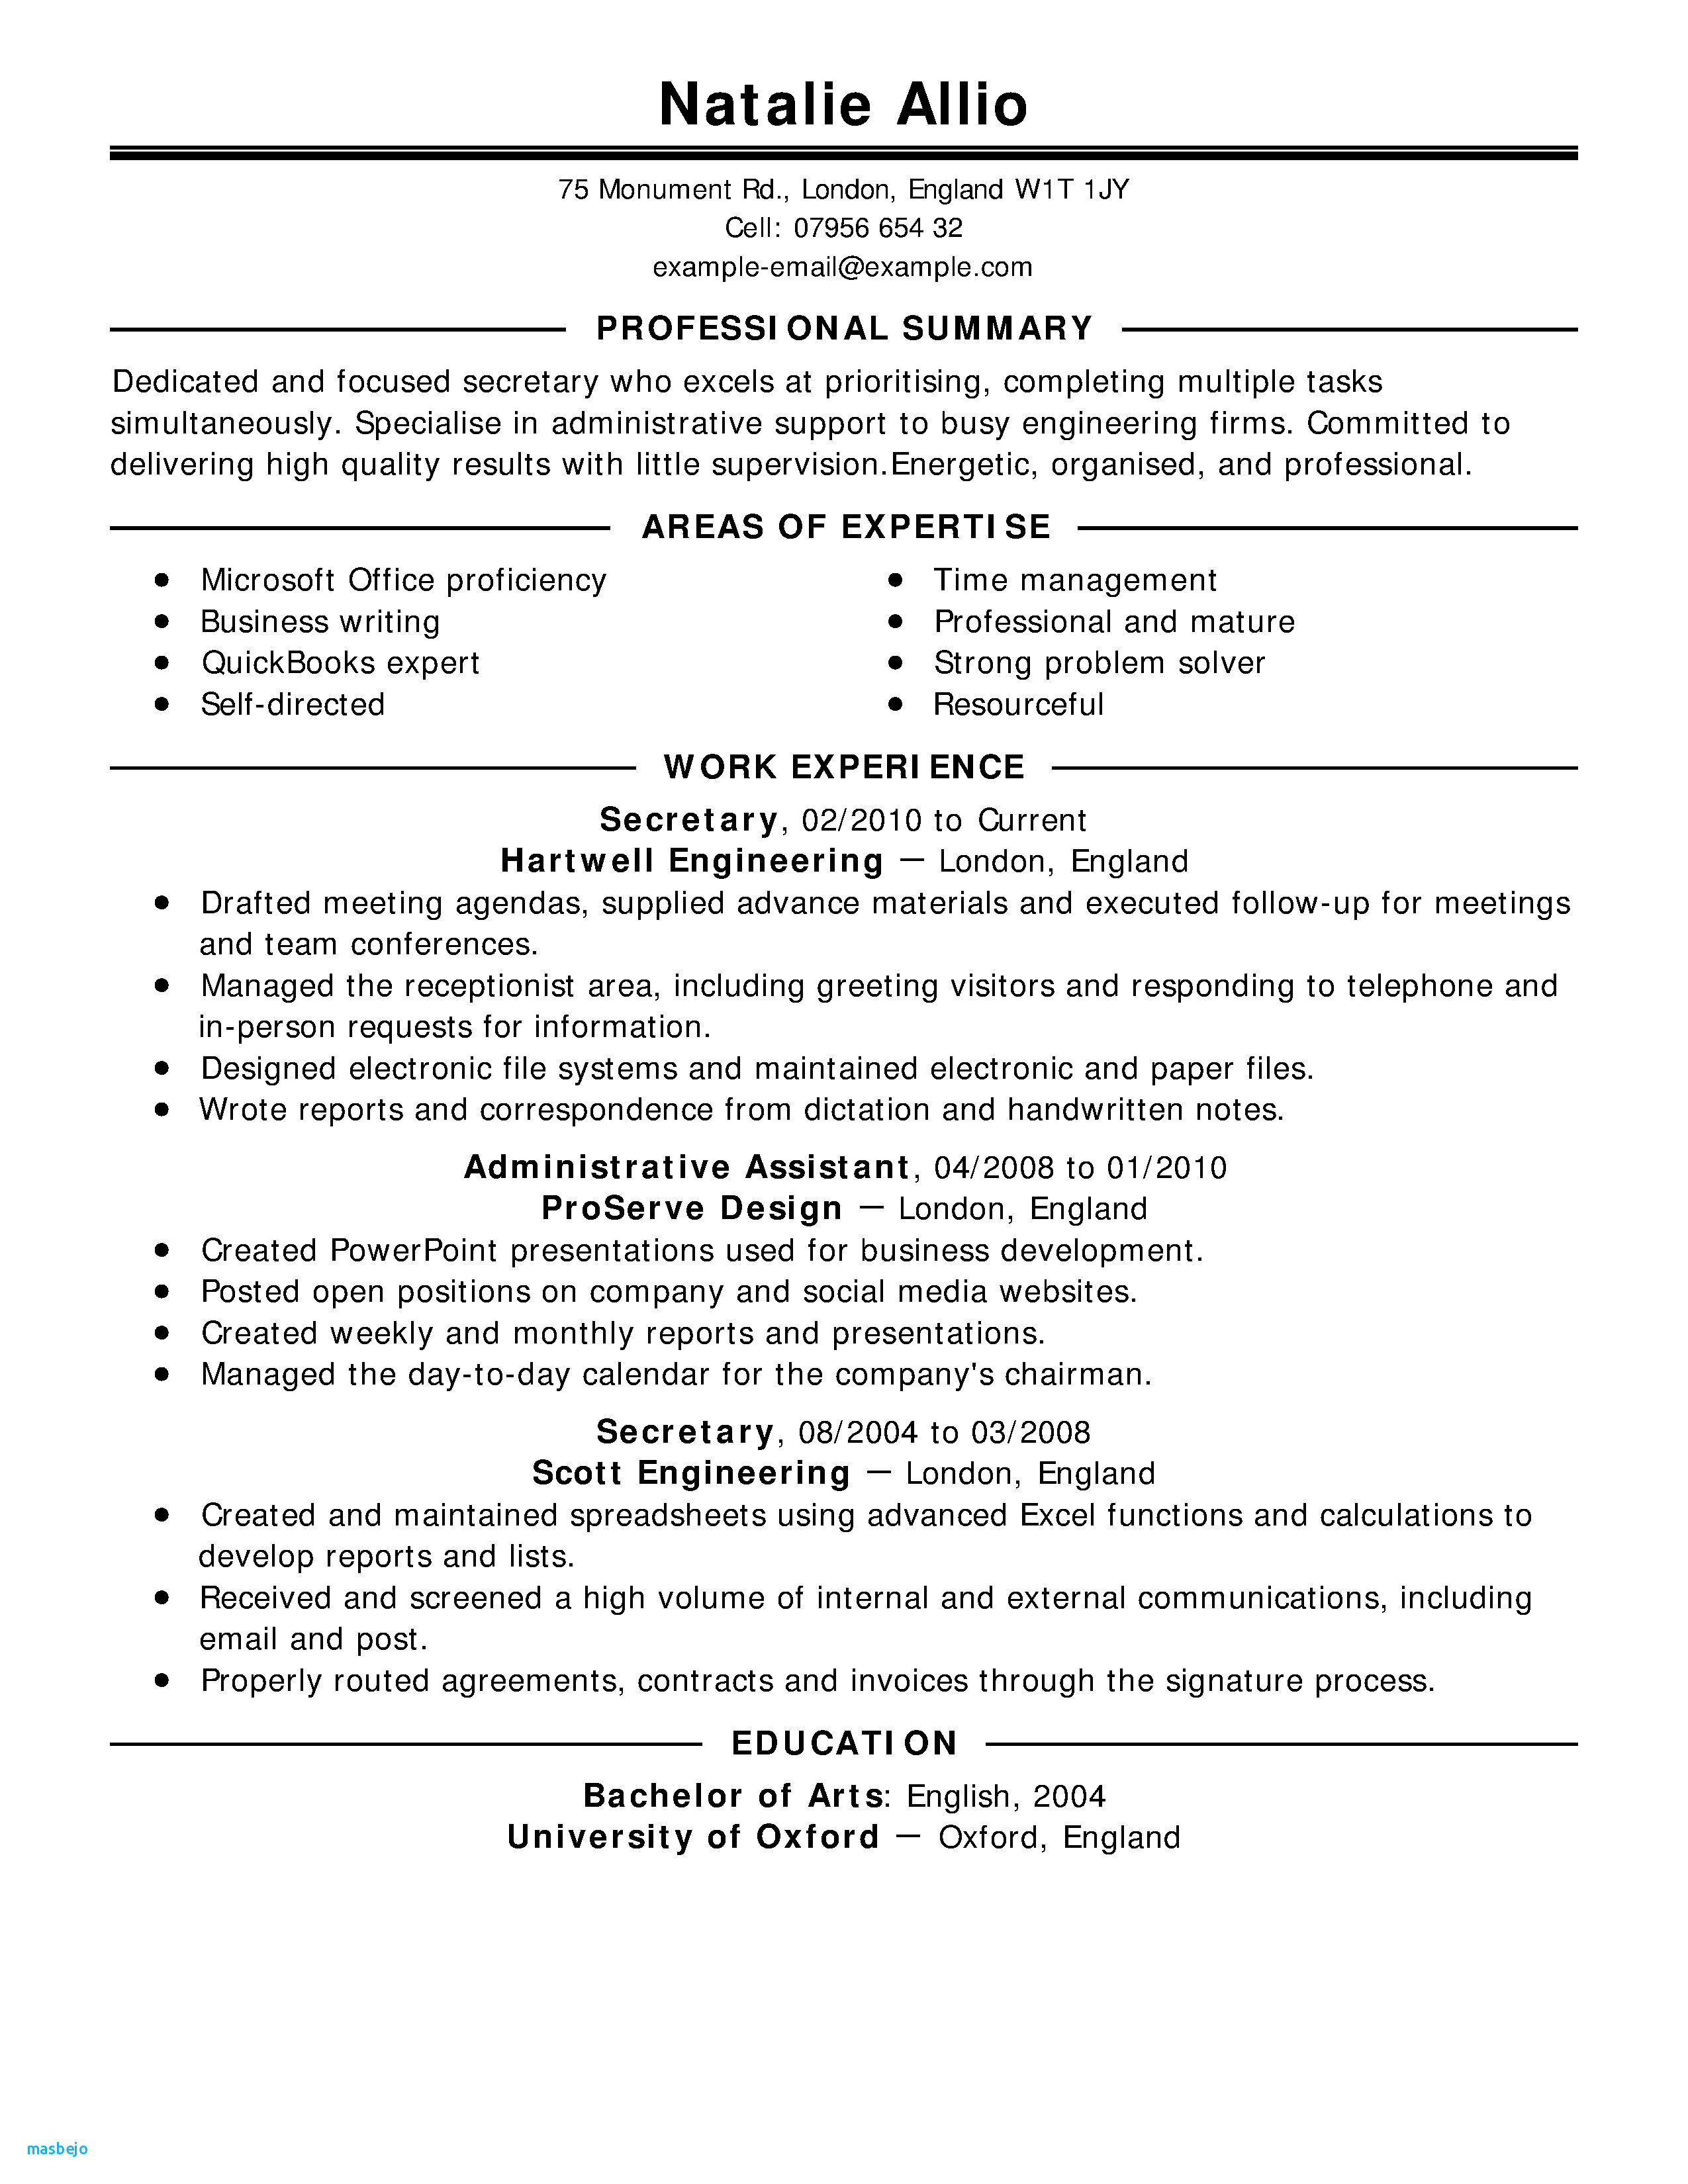 Resume for College Applications - Lpn Resume Examples Unique Sample College Application Resume Lovely